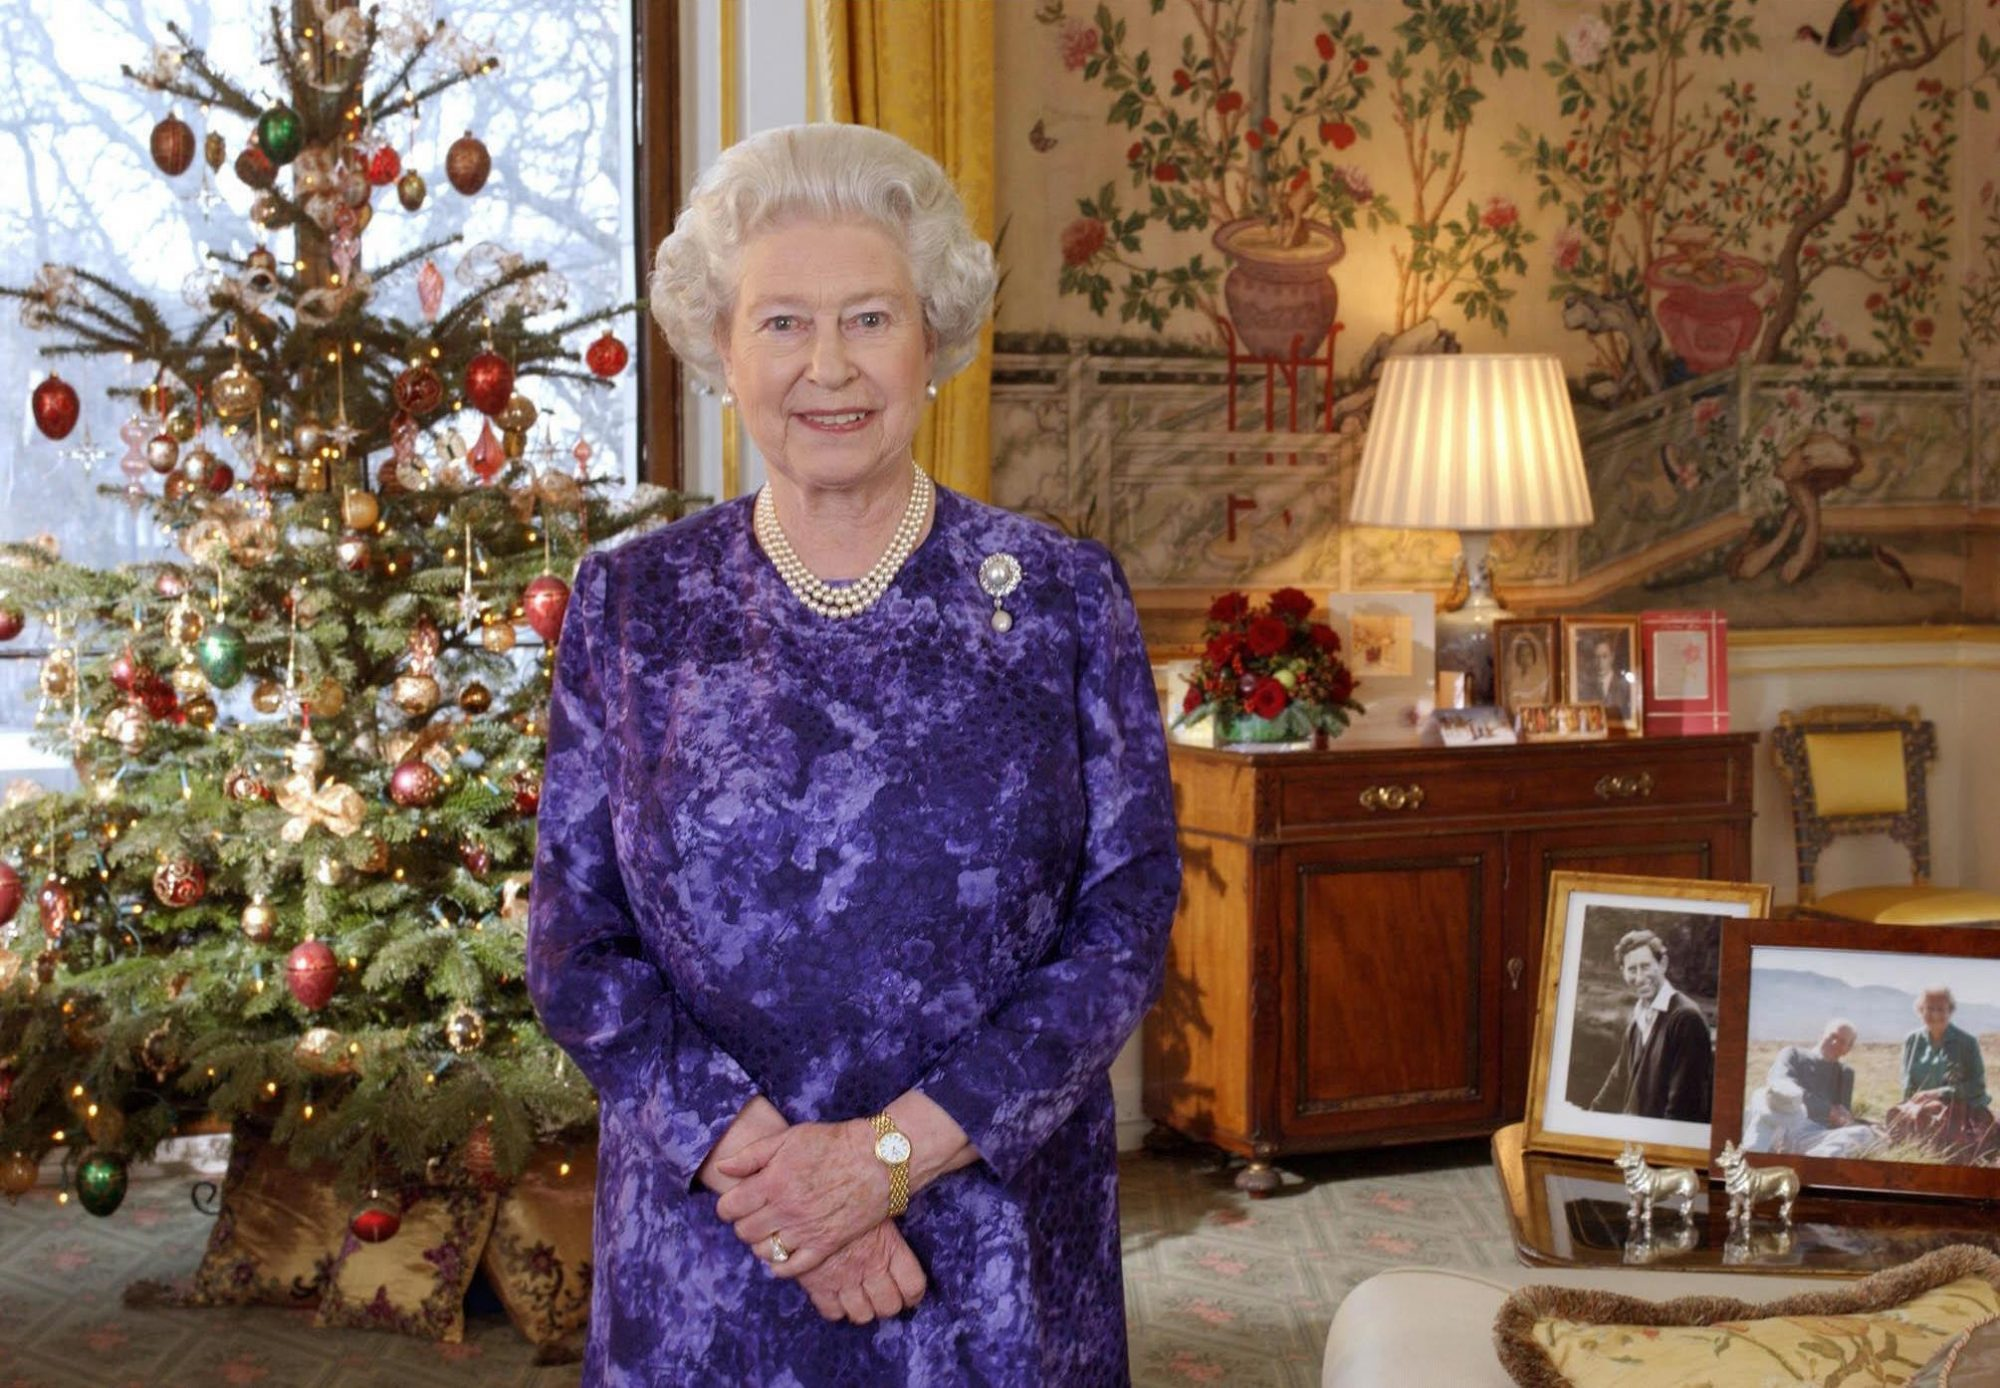 The Queen's 2004 Christmas Broadcast